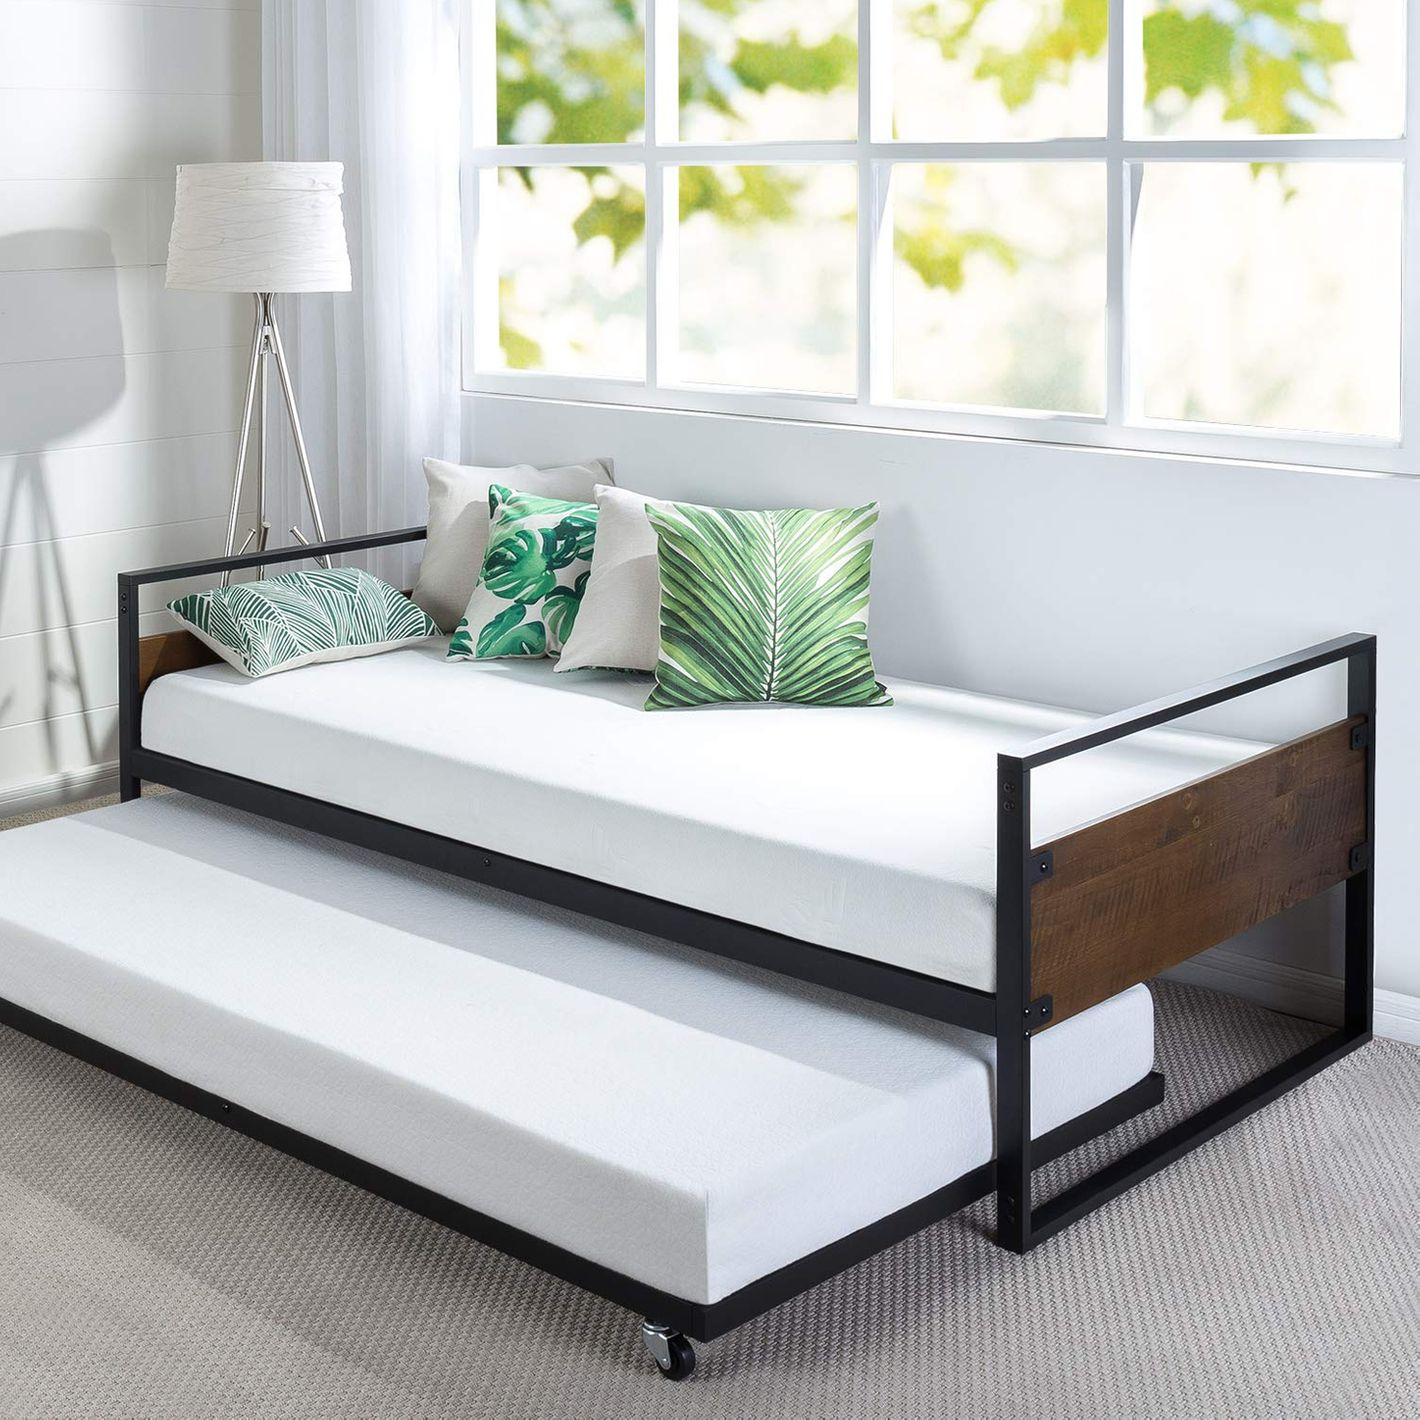 Zinus Ironline Twin Daybed and Trundle Frame Set